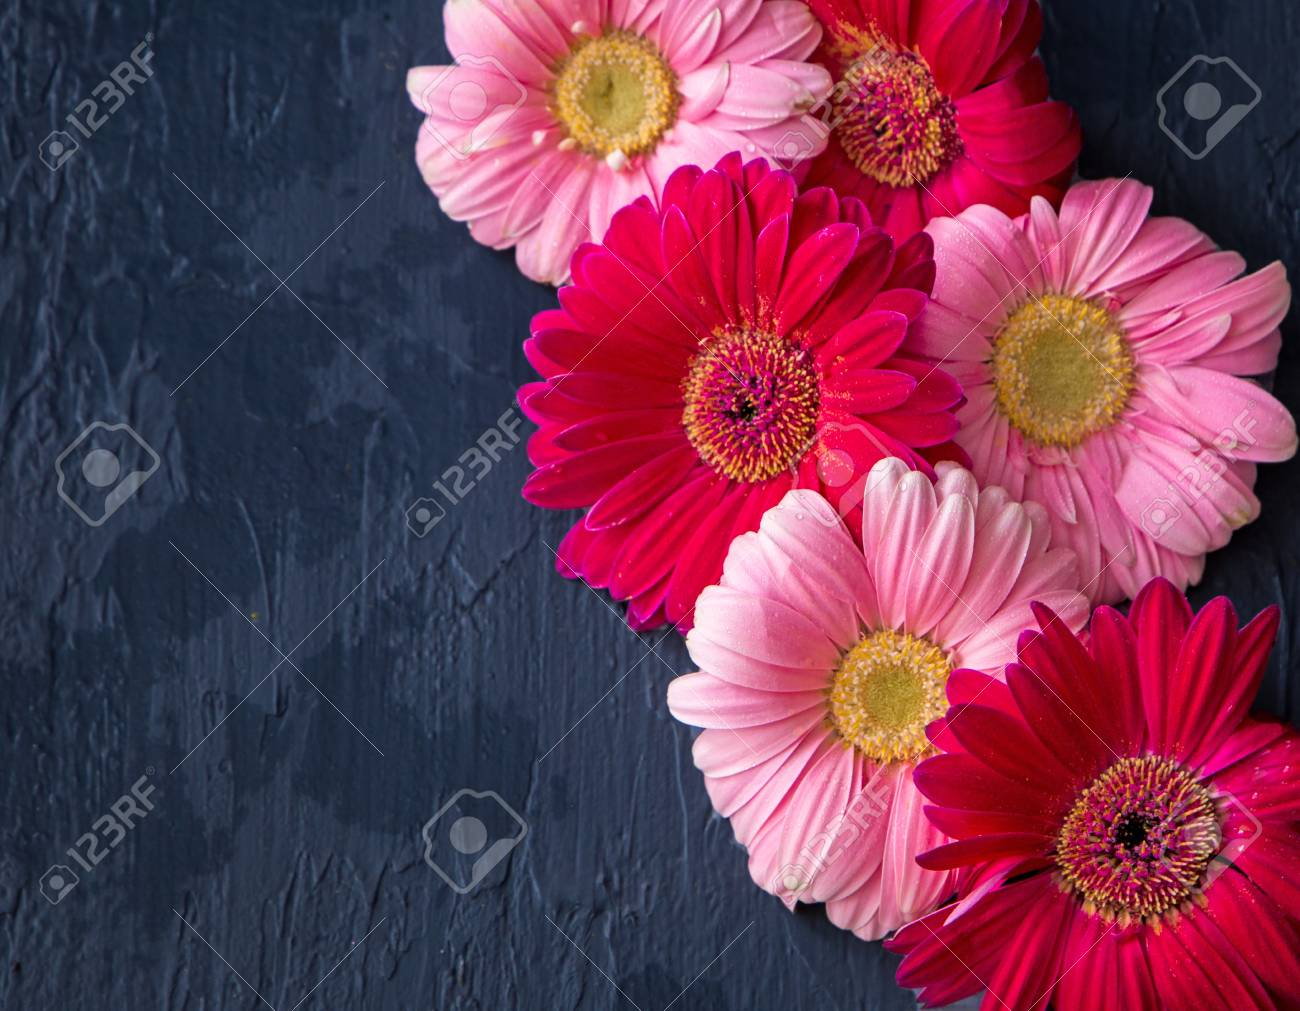 Pink And Red Gerbera Daisy Flower On Concrete Backgrounds. Spring ...